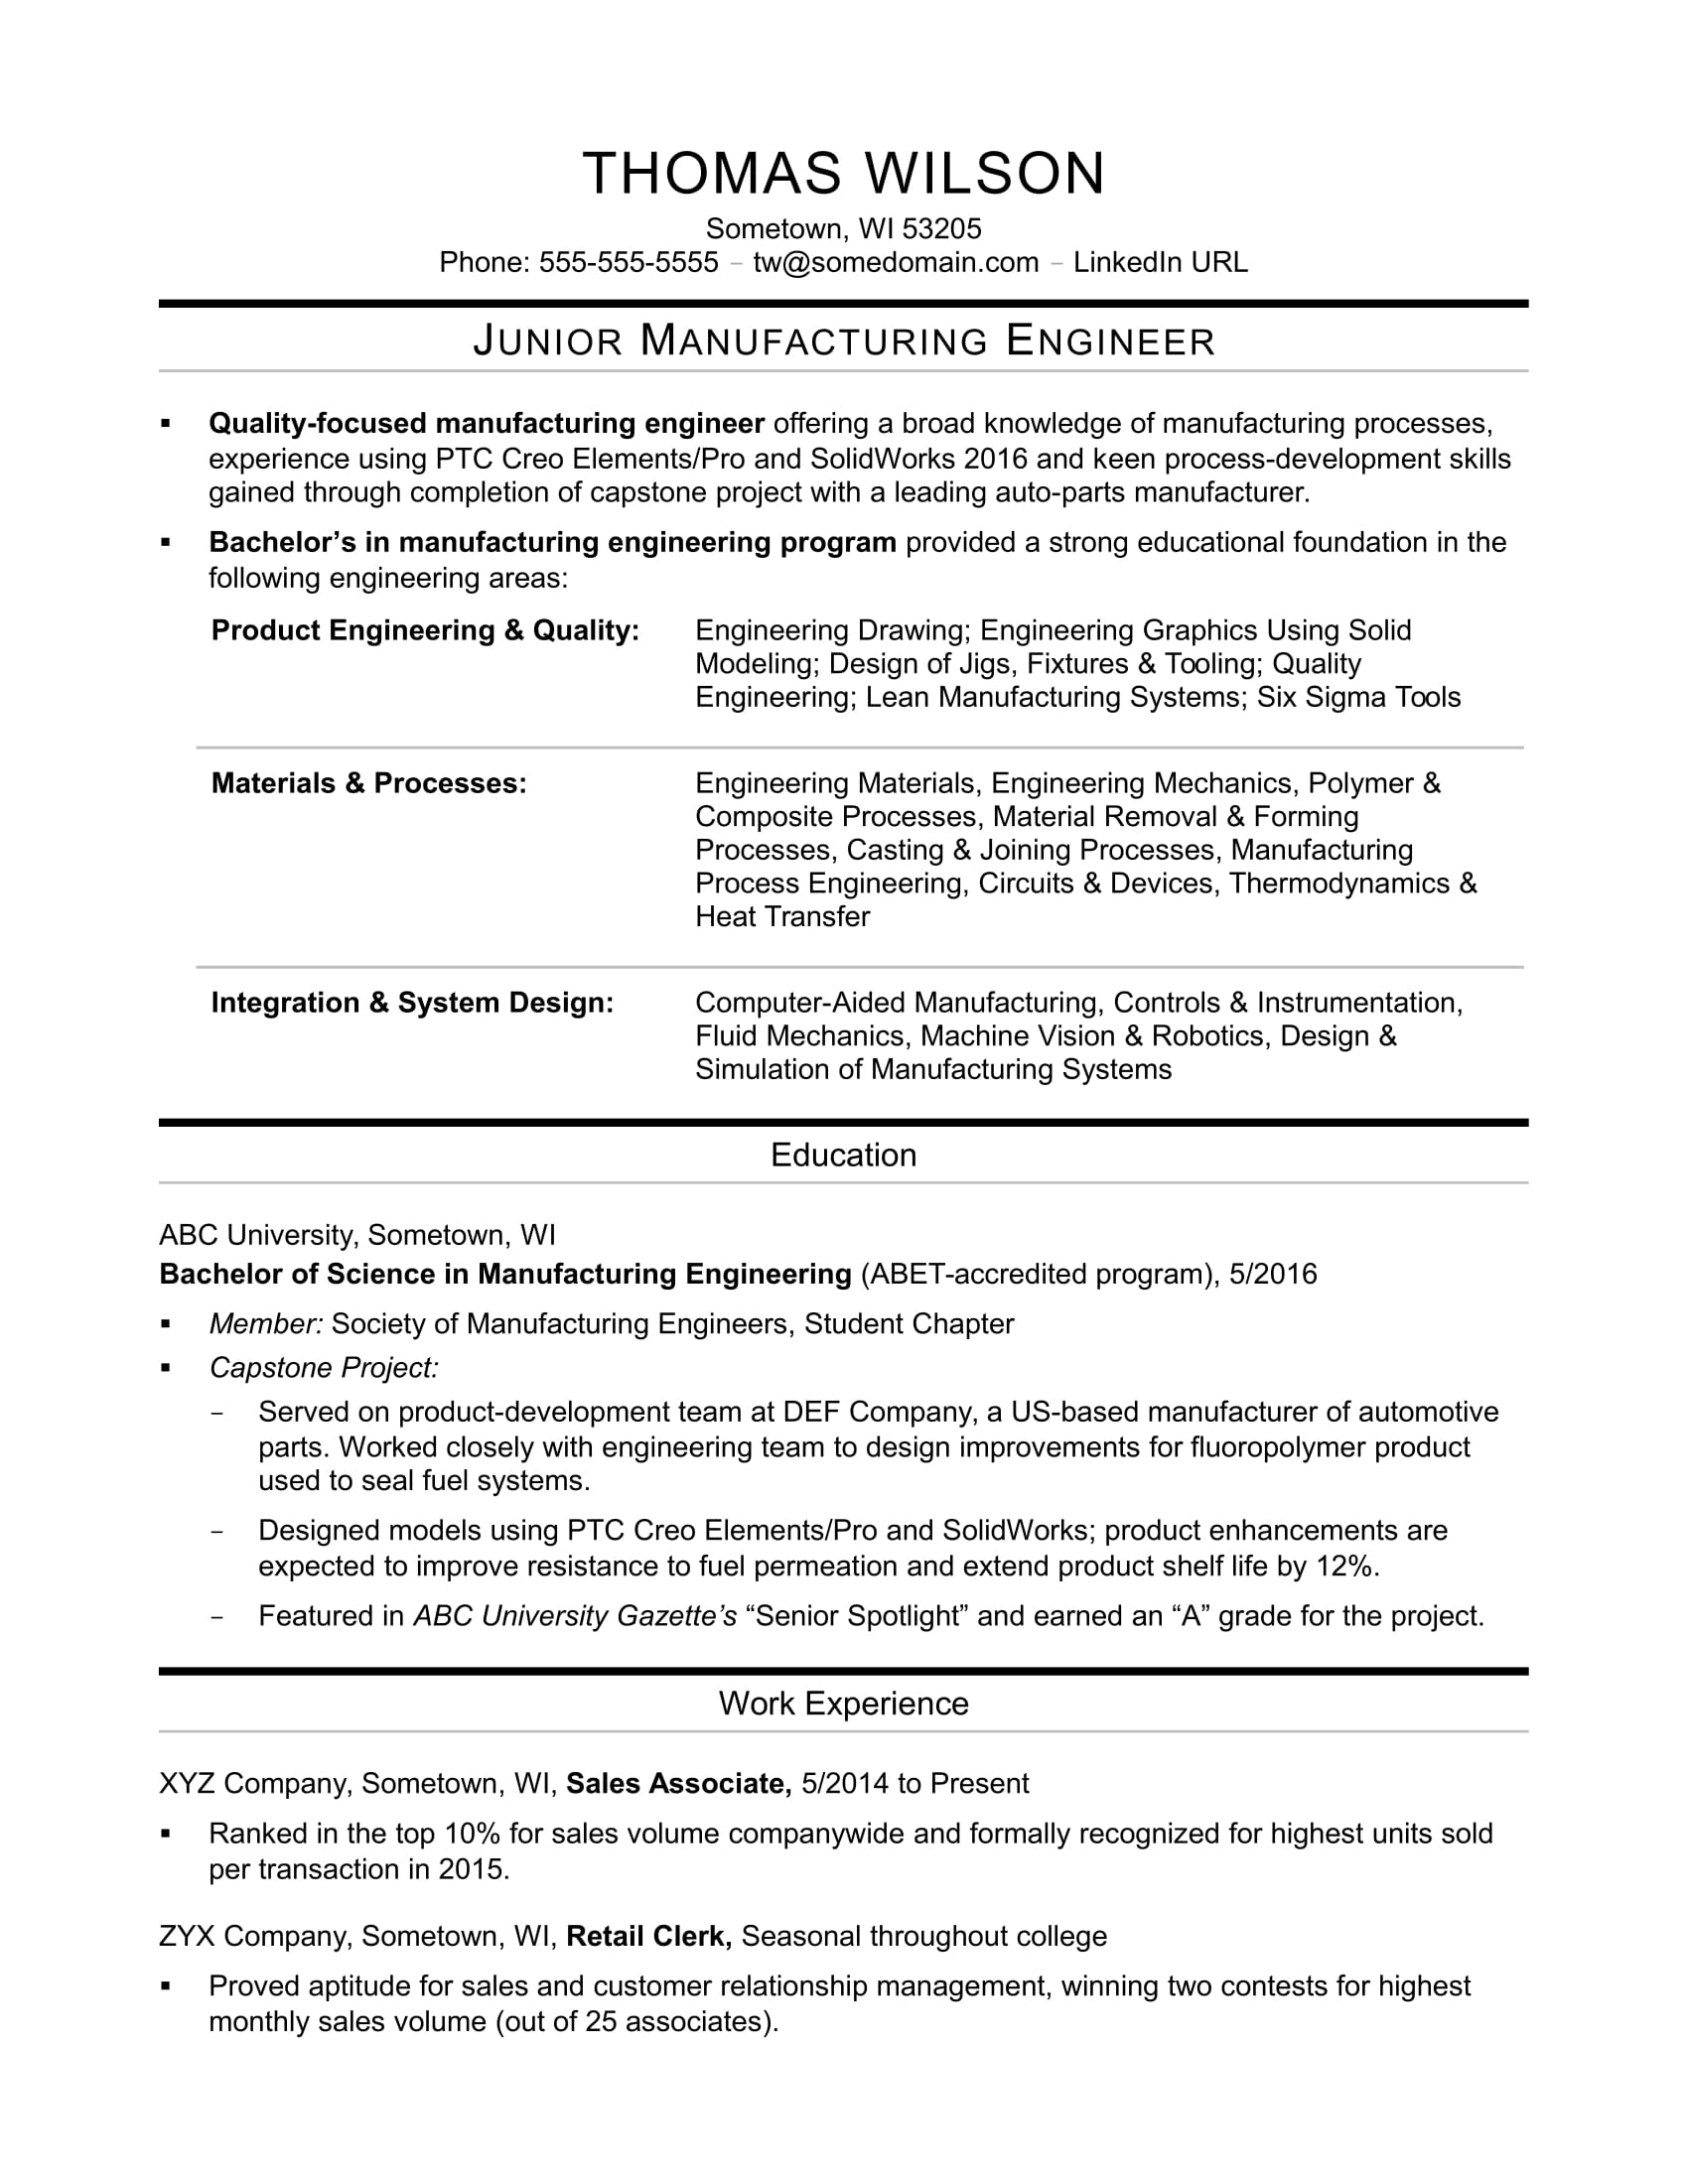 Sample Resume For An EntryLevel Manufacturing Engineer  MonsterCom